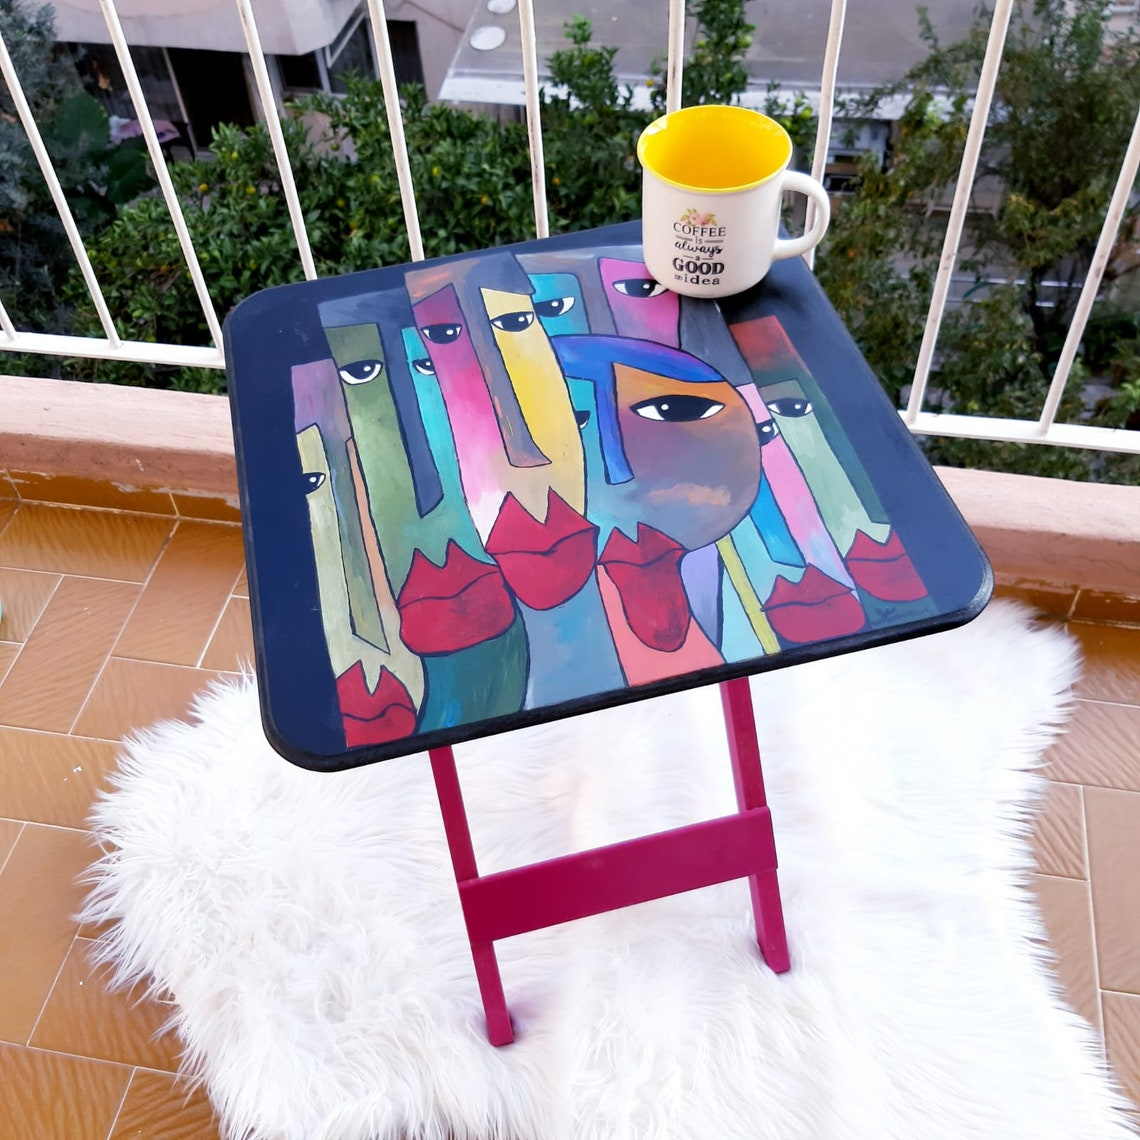 Wooden Table For Children, Hand Painted Children Desk, Desk for Kids